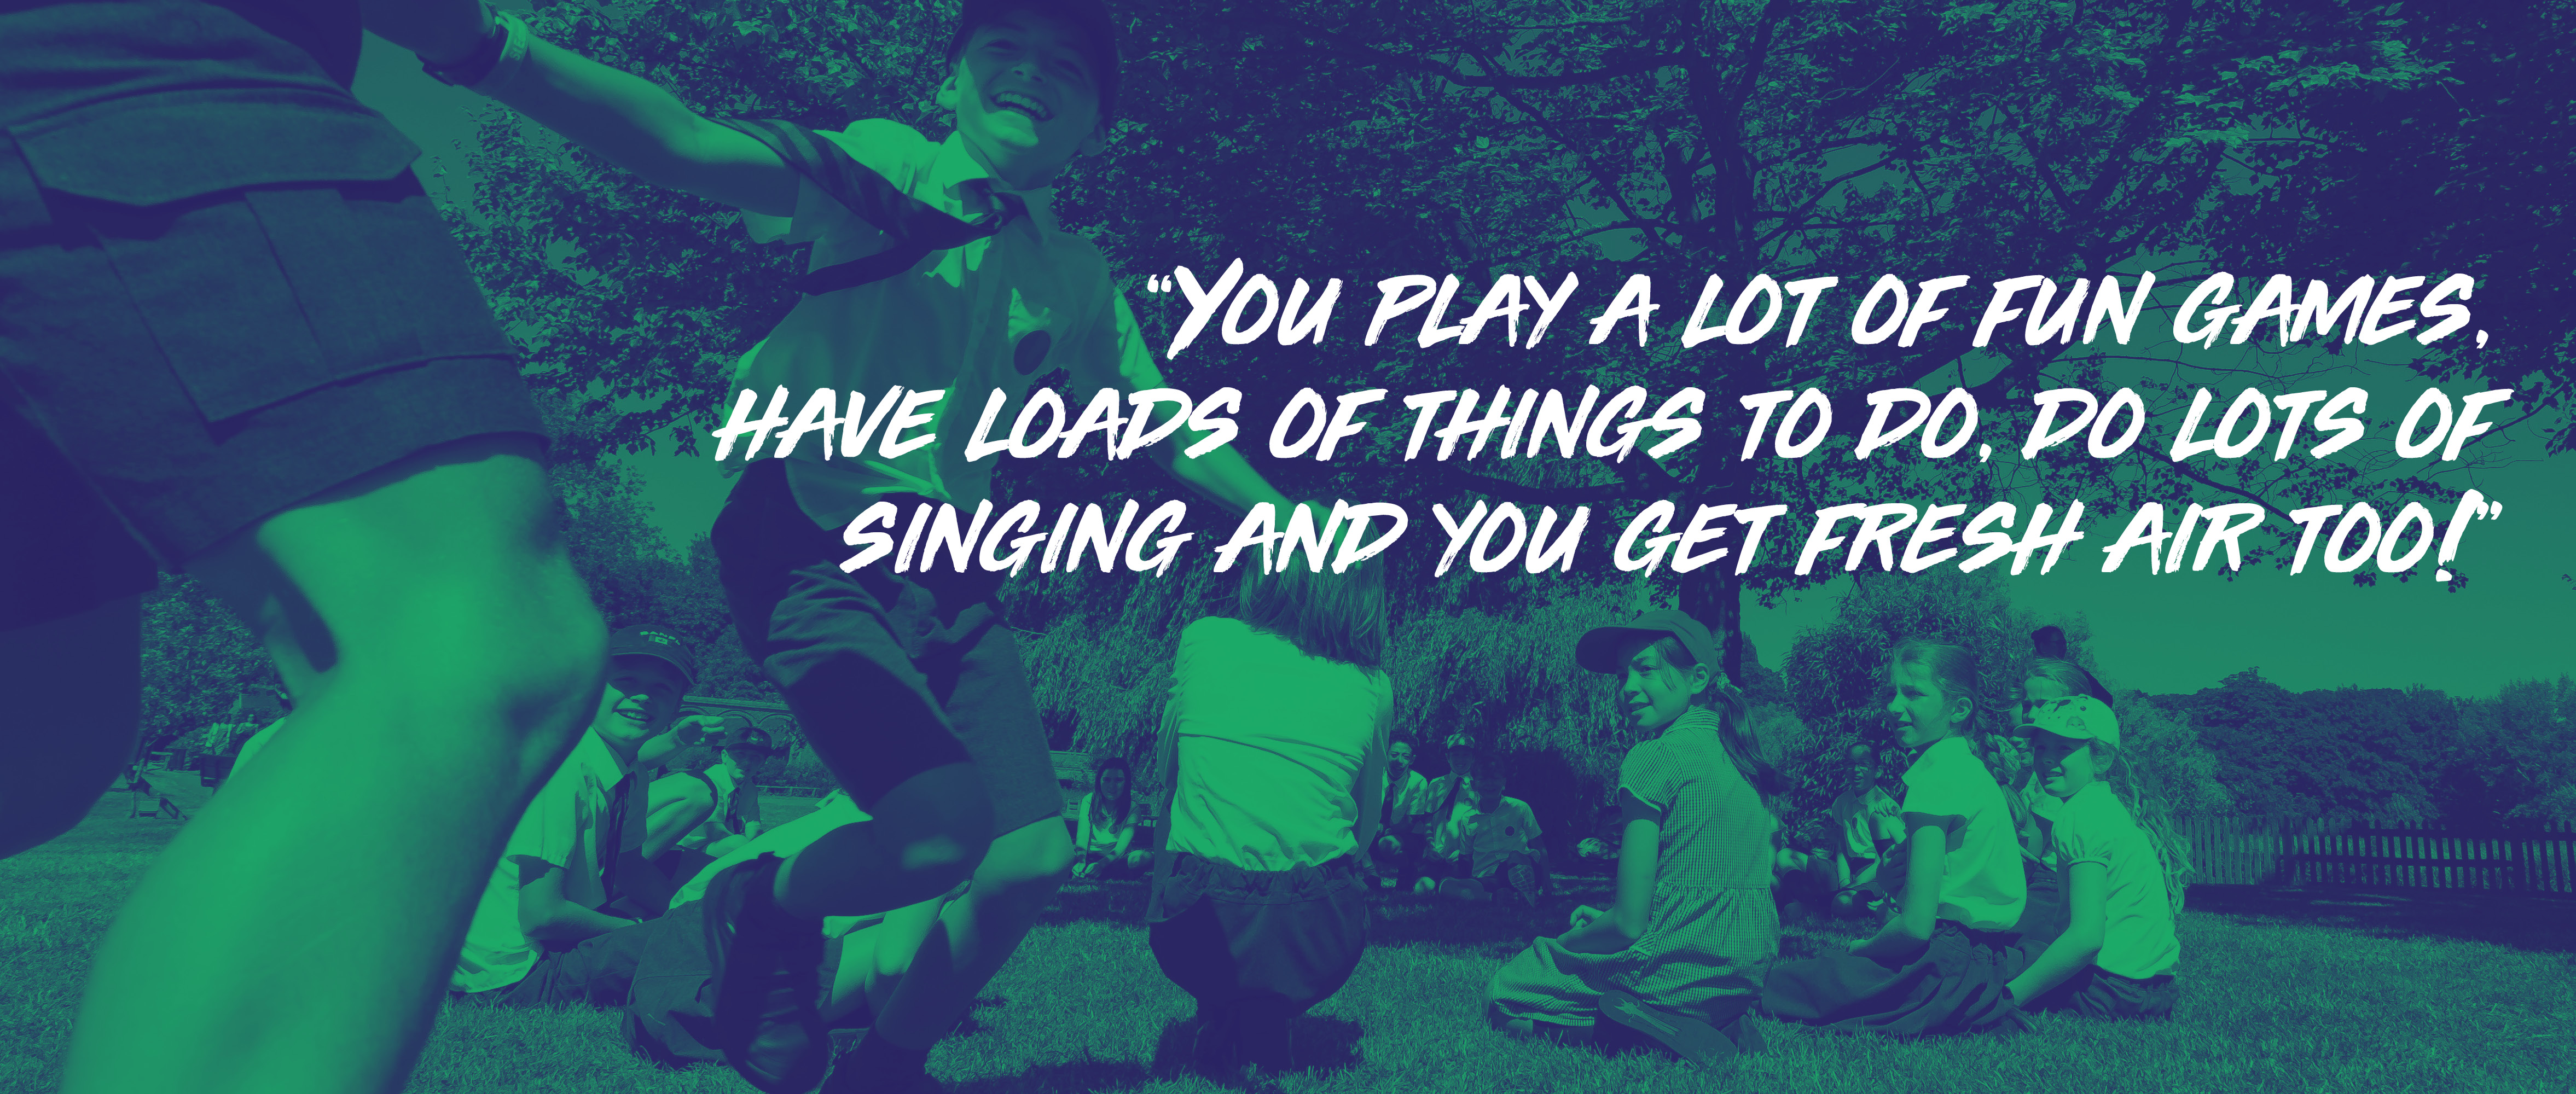 "Quote: ""You play a lot of fun games, have loads of things to do, do lots of singing and you get fresh air too!"""